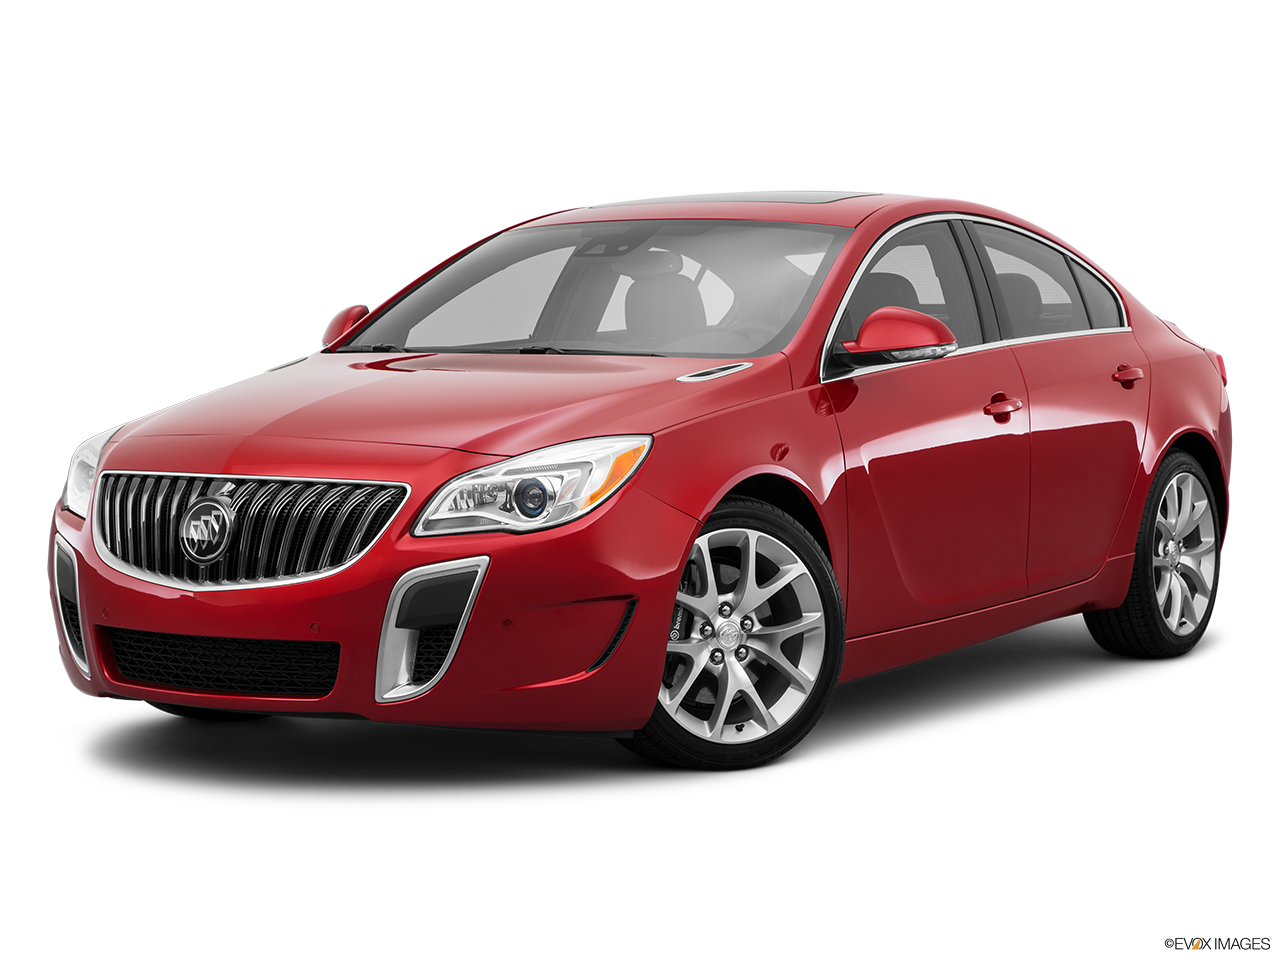 2015 Buick Regal #18